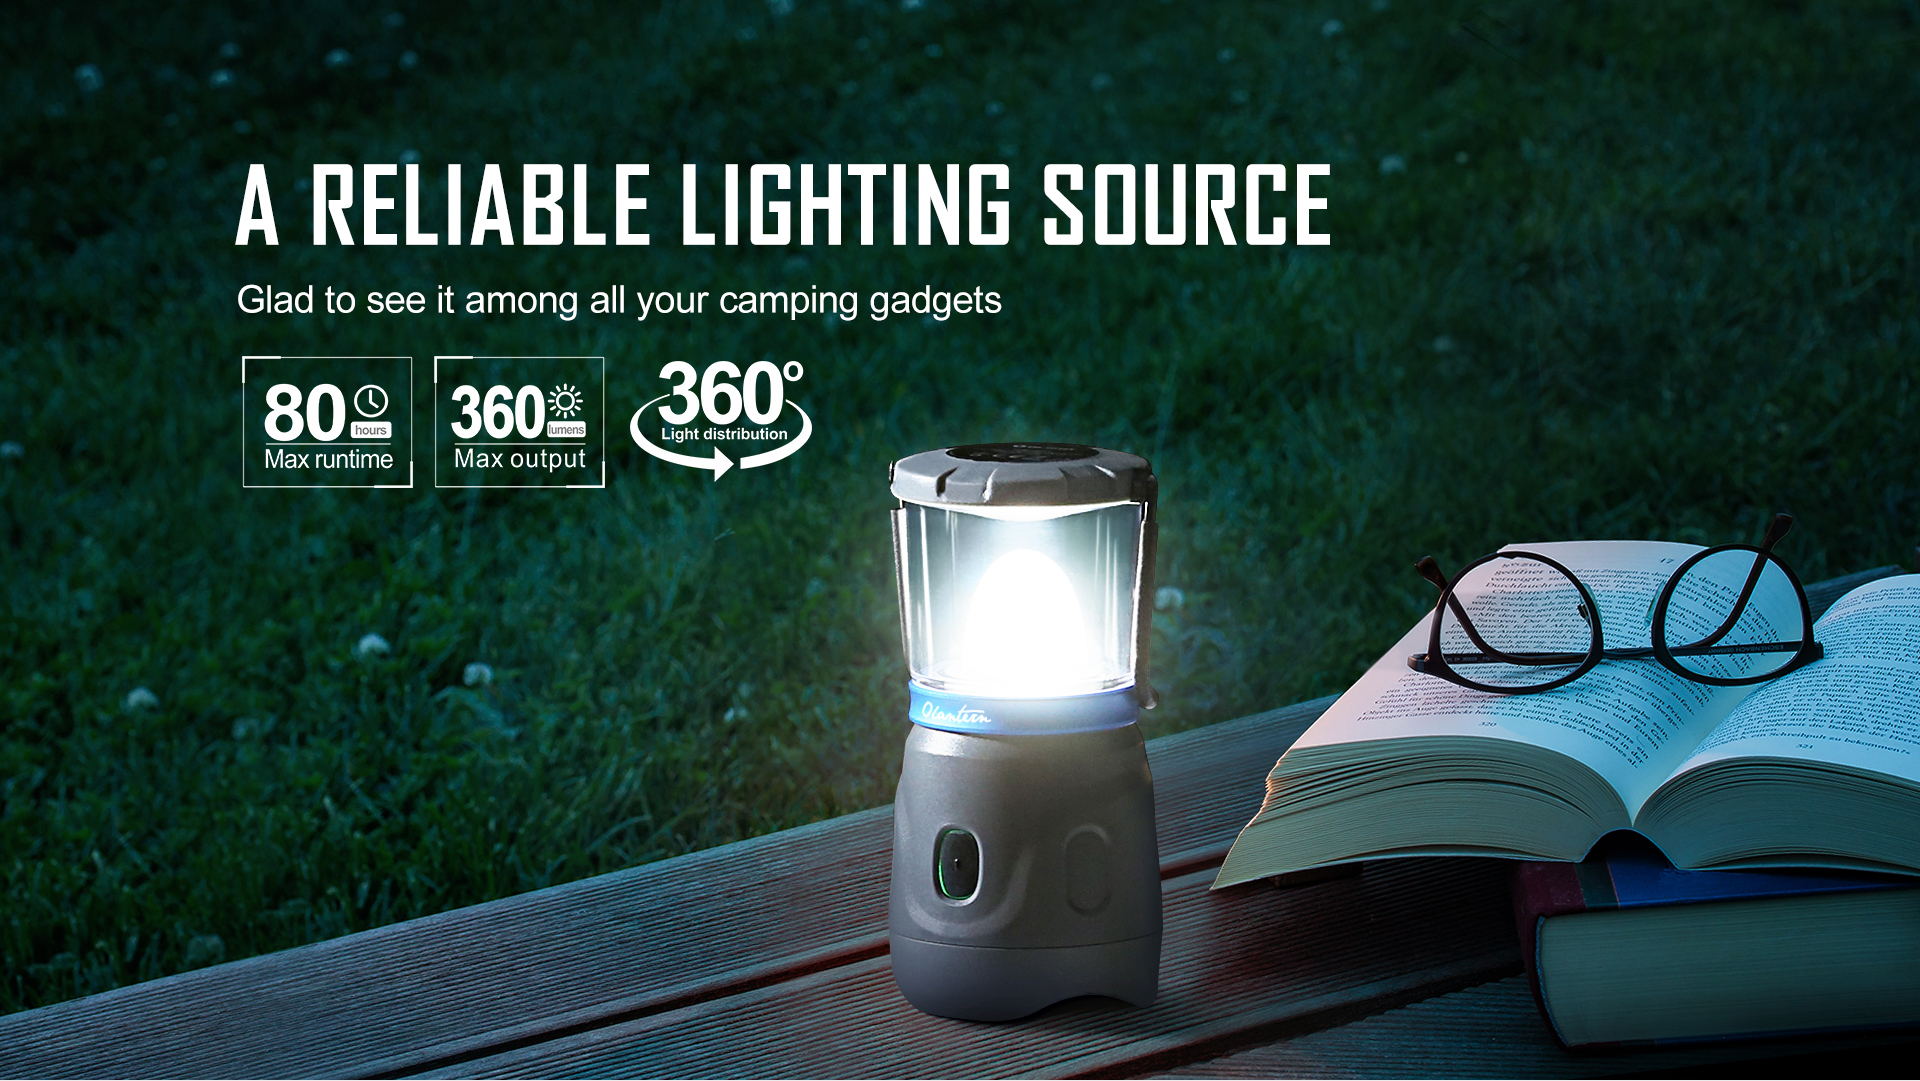 Olantern Rechargeable Camping Lights Reliable Source